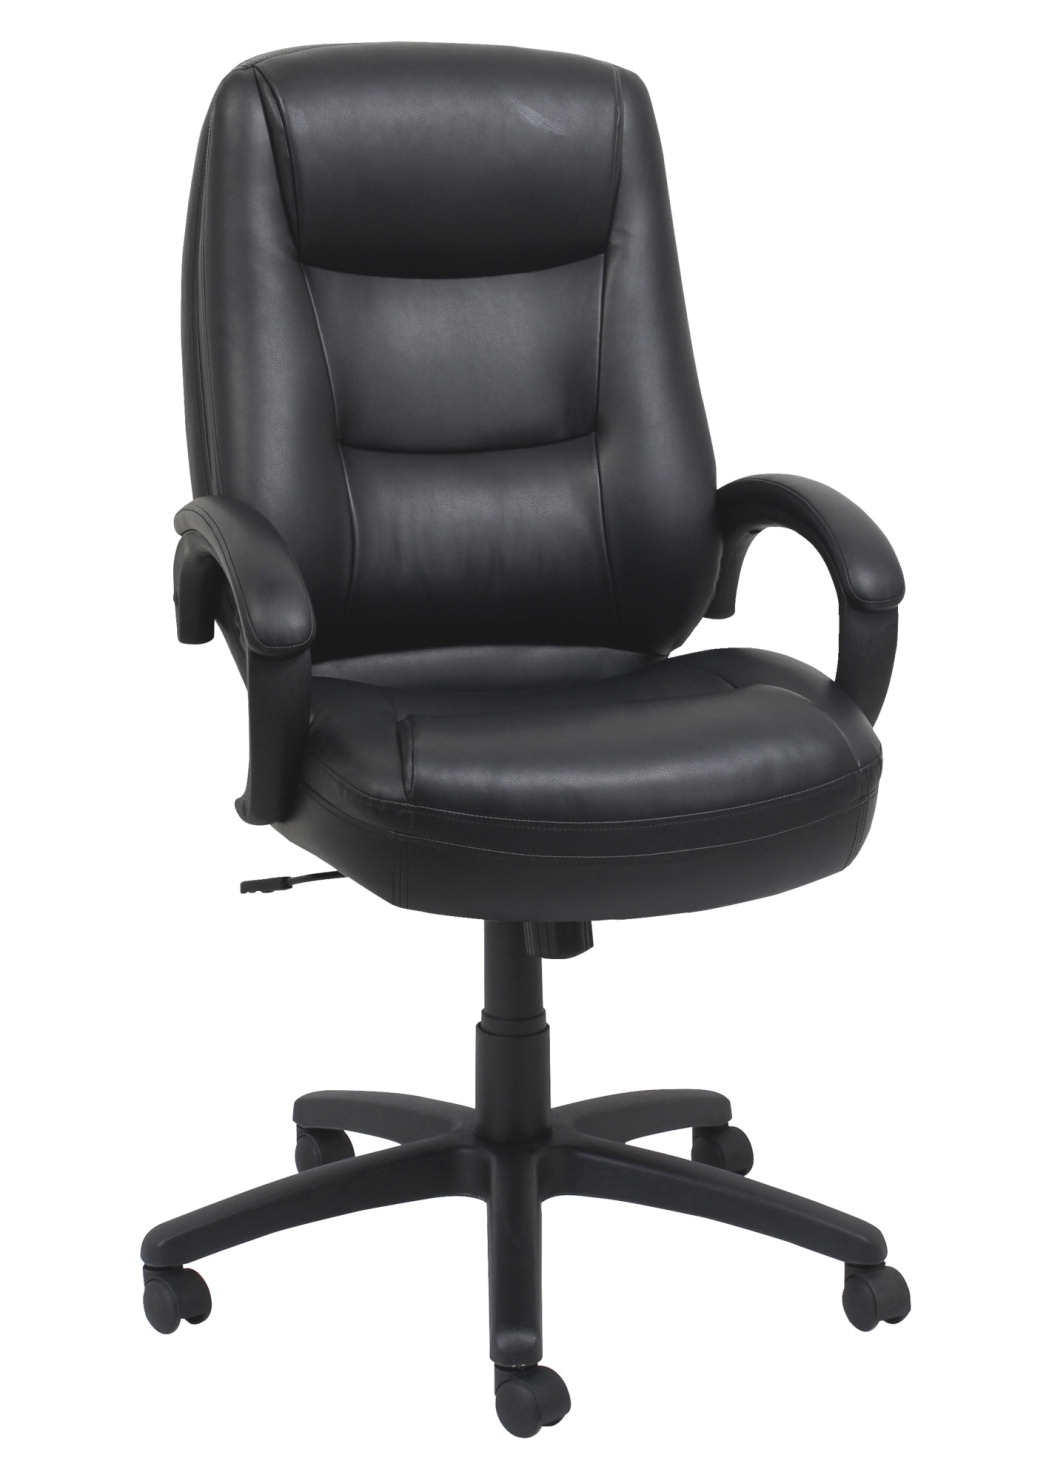 Lorell Westlake Series Executive High-back Chairs; 26-1/2 X 28-1/2 X 47-1/2 In; Black - 1505821 - Facilities Management Bar Stool Set Table Chair Metal State Logo Chairs Wood Metal Chairs 1505821